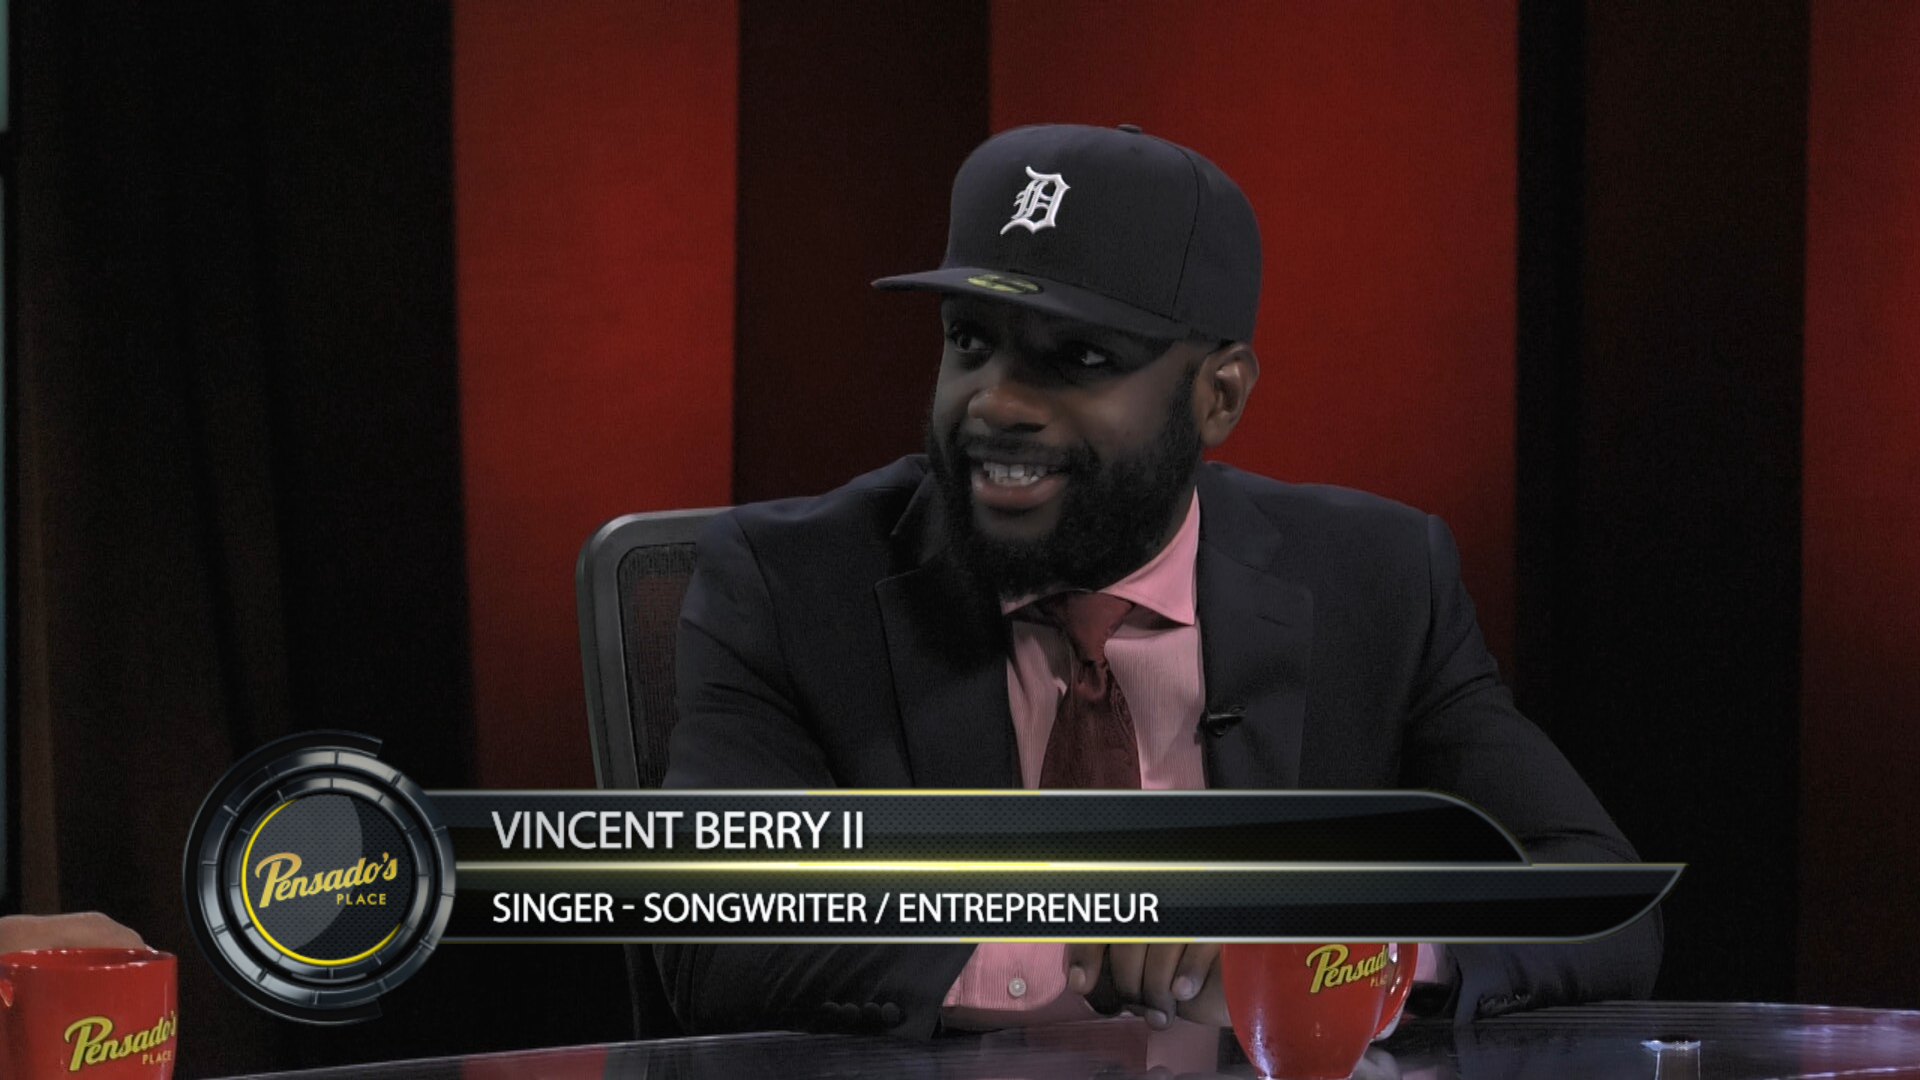 Singer-Songwriter/Entrepreneur Vincent Berry II – Pensado's Place # 266